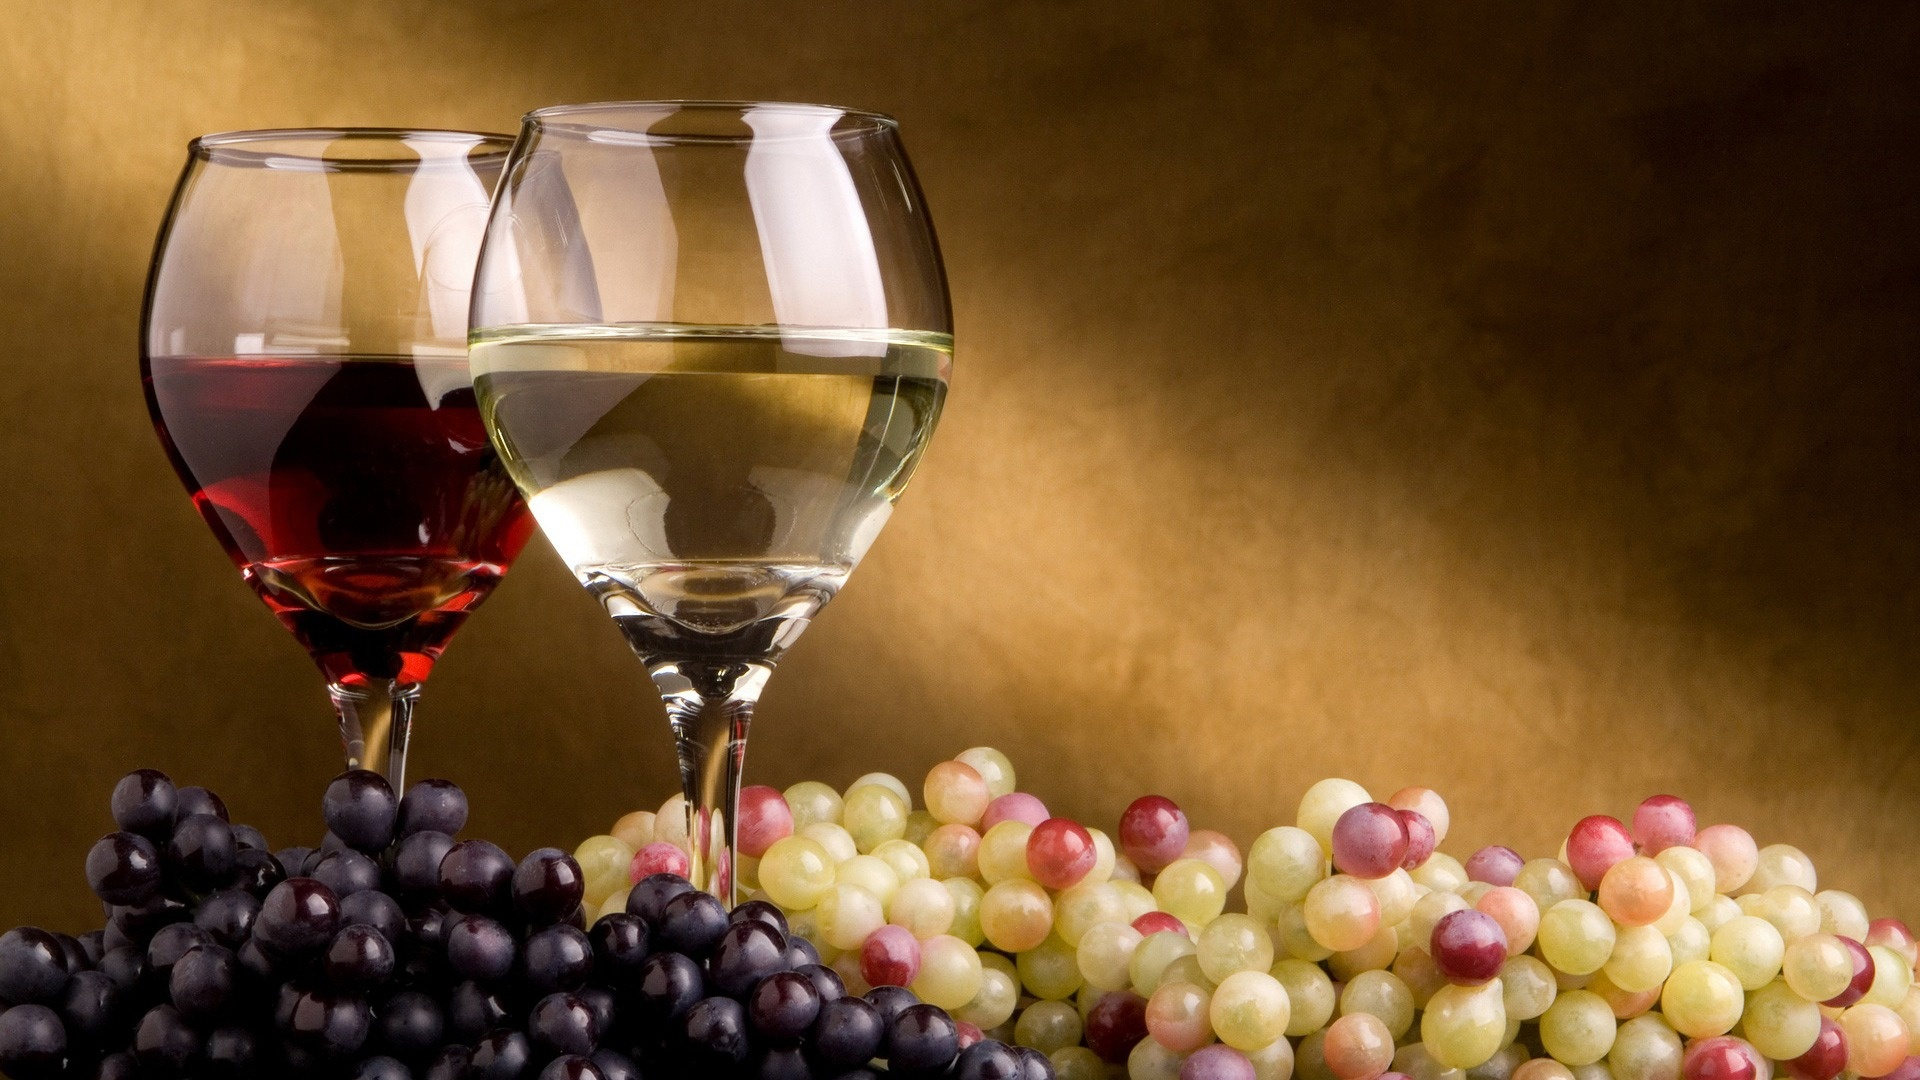 wine, glasses, grapes